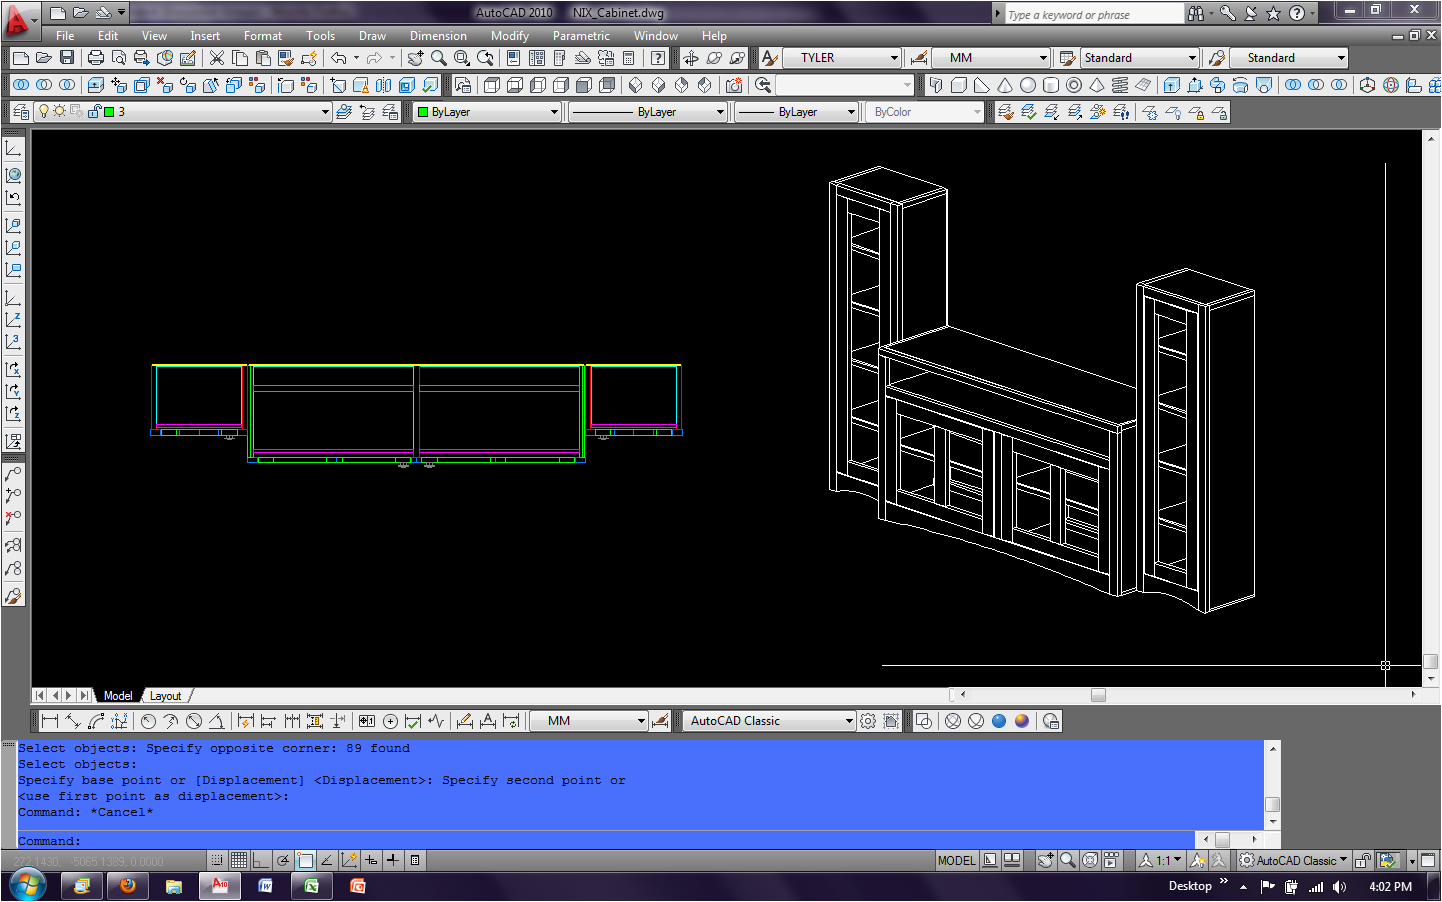 P cad 2006 download free pcad 2006 download free pcadpcb altium designer 68 free download p-cad download altium